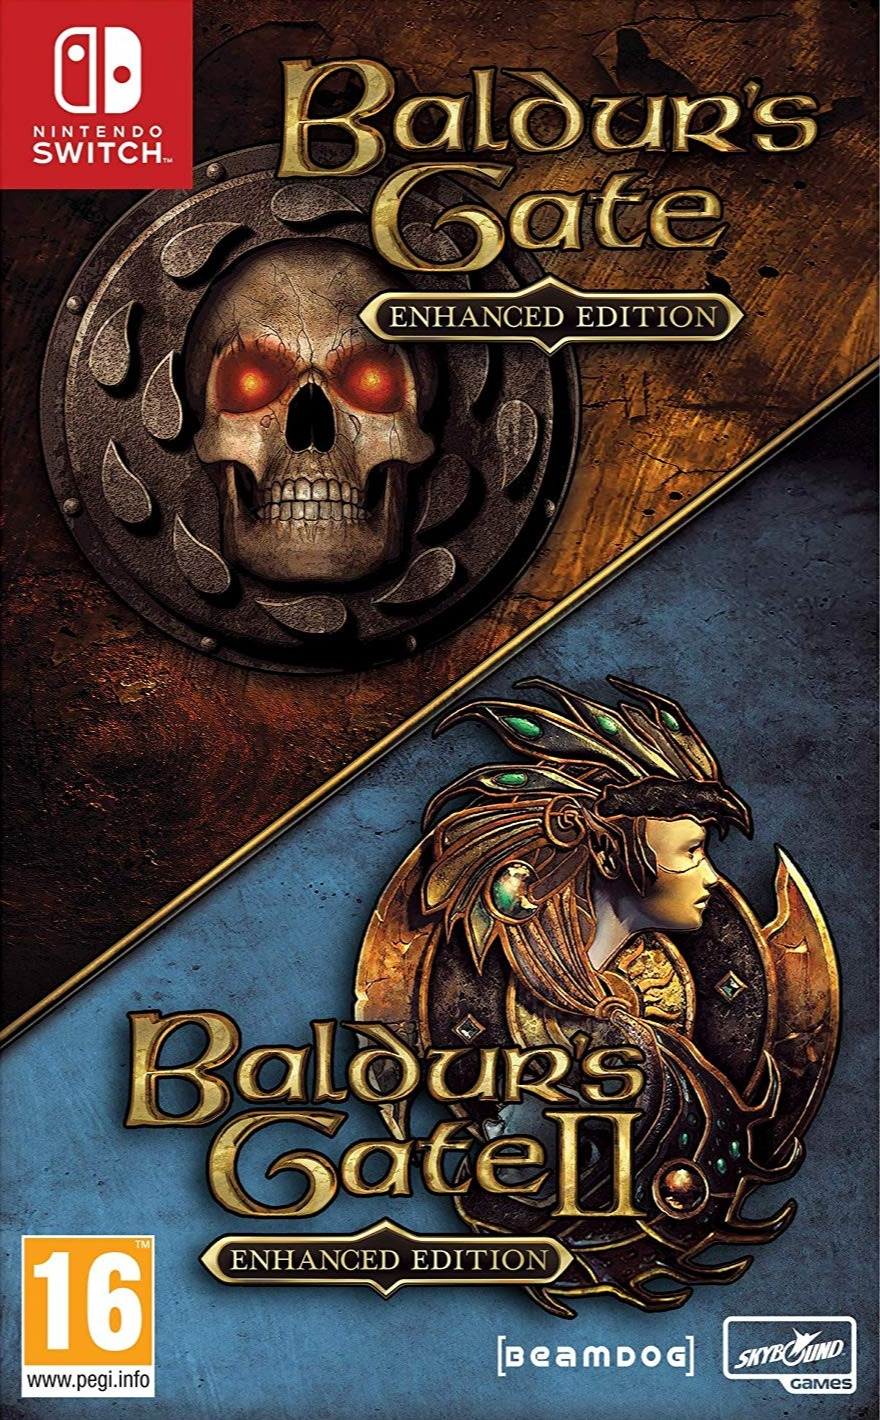 Baldurs Gate I & II: Enhanced Edition (SWITCH)